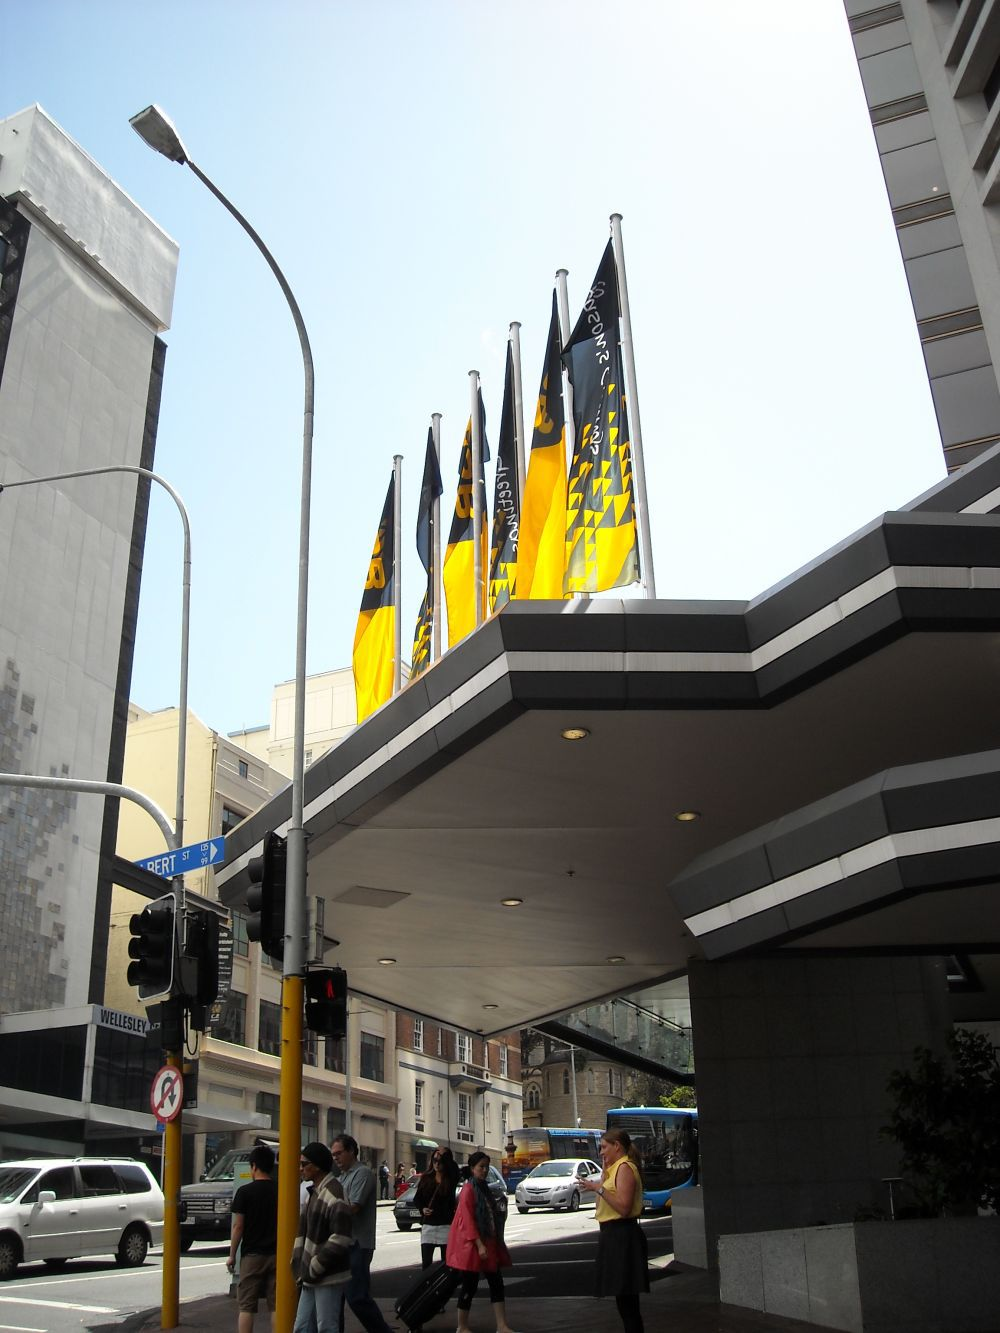 Design and installed Flagpoles on street canopy